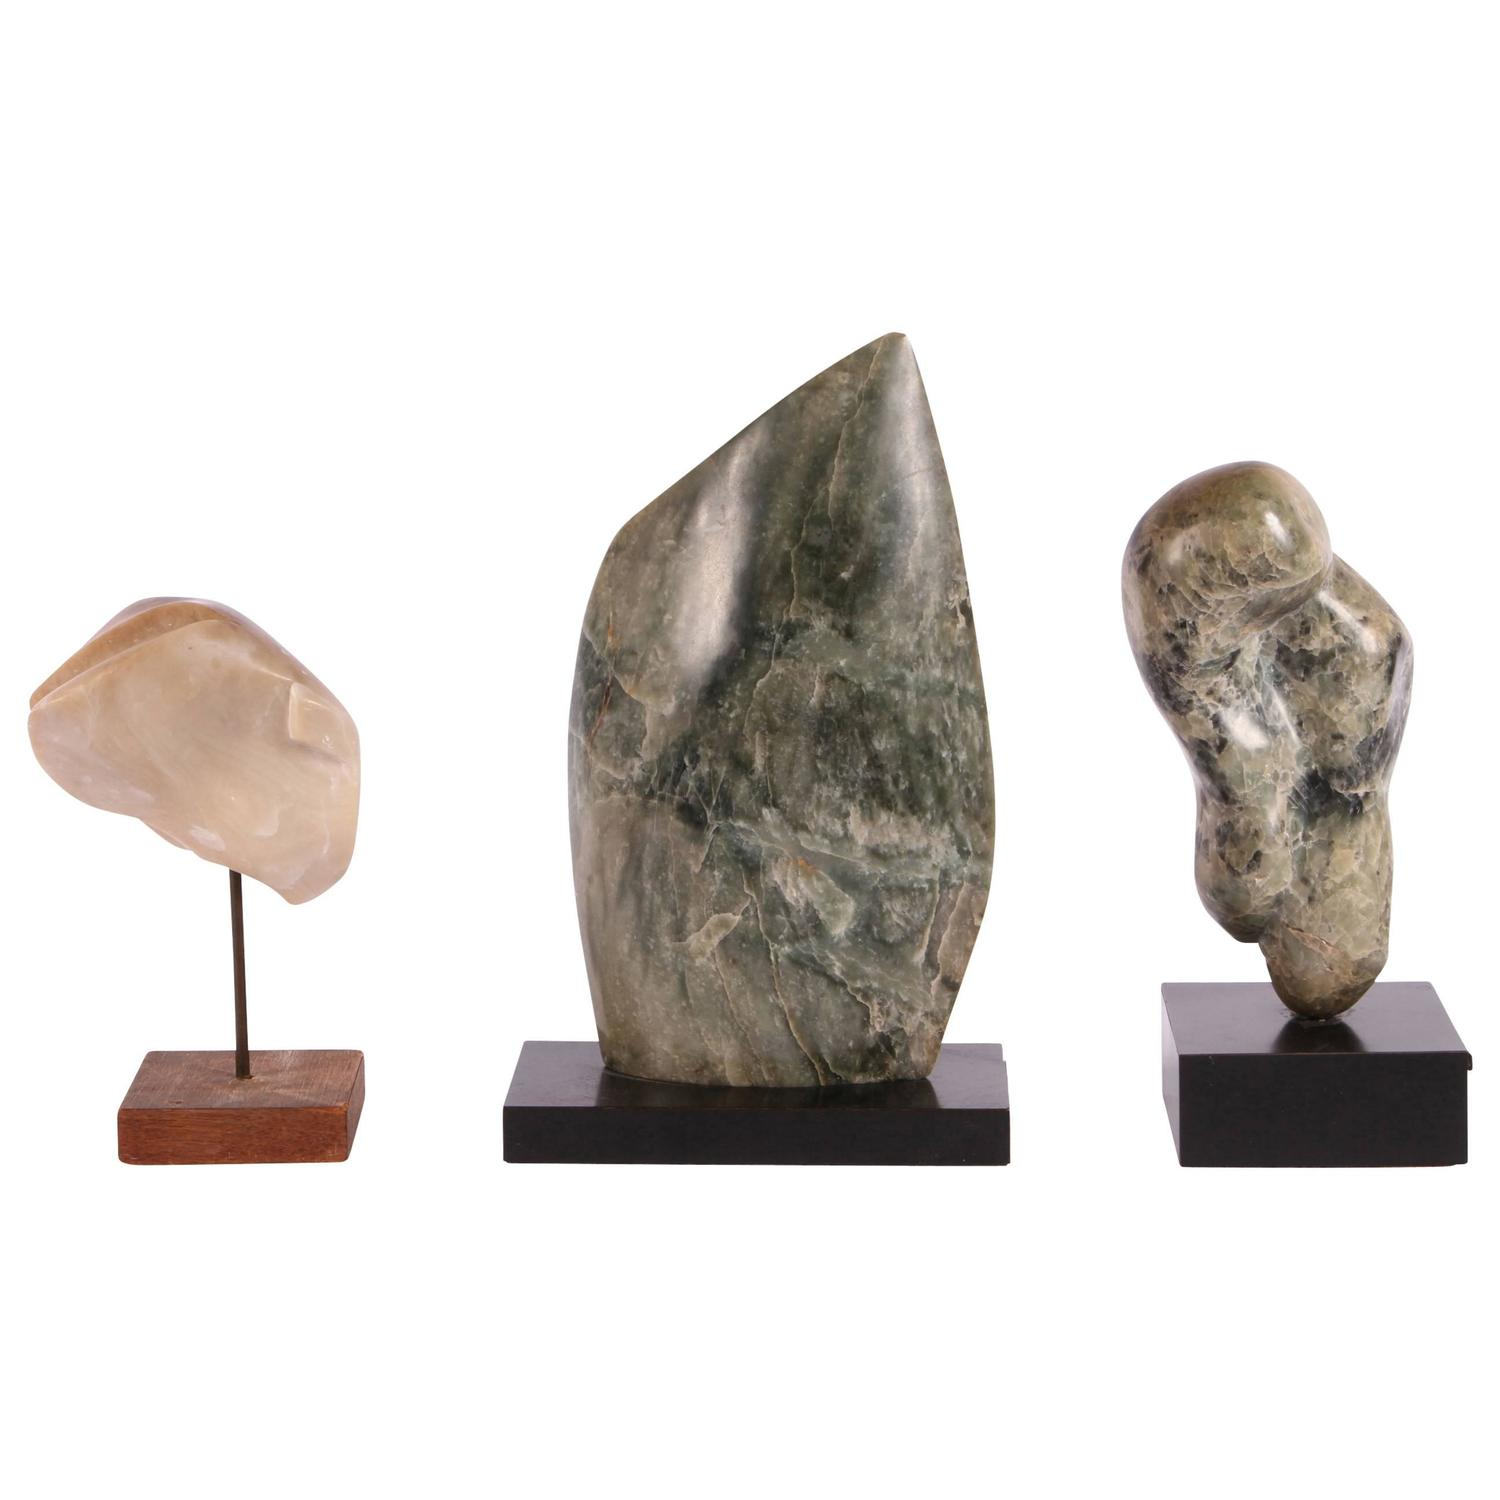 Group of three mid century abstract stone sculptures for